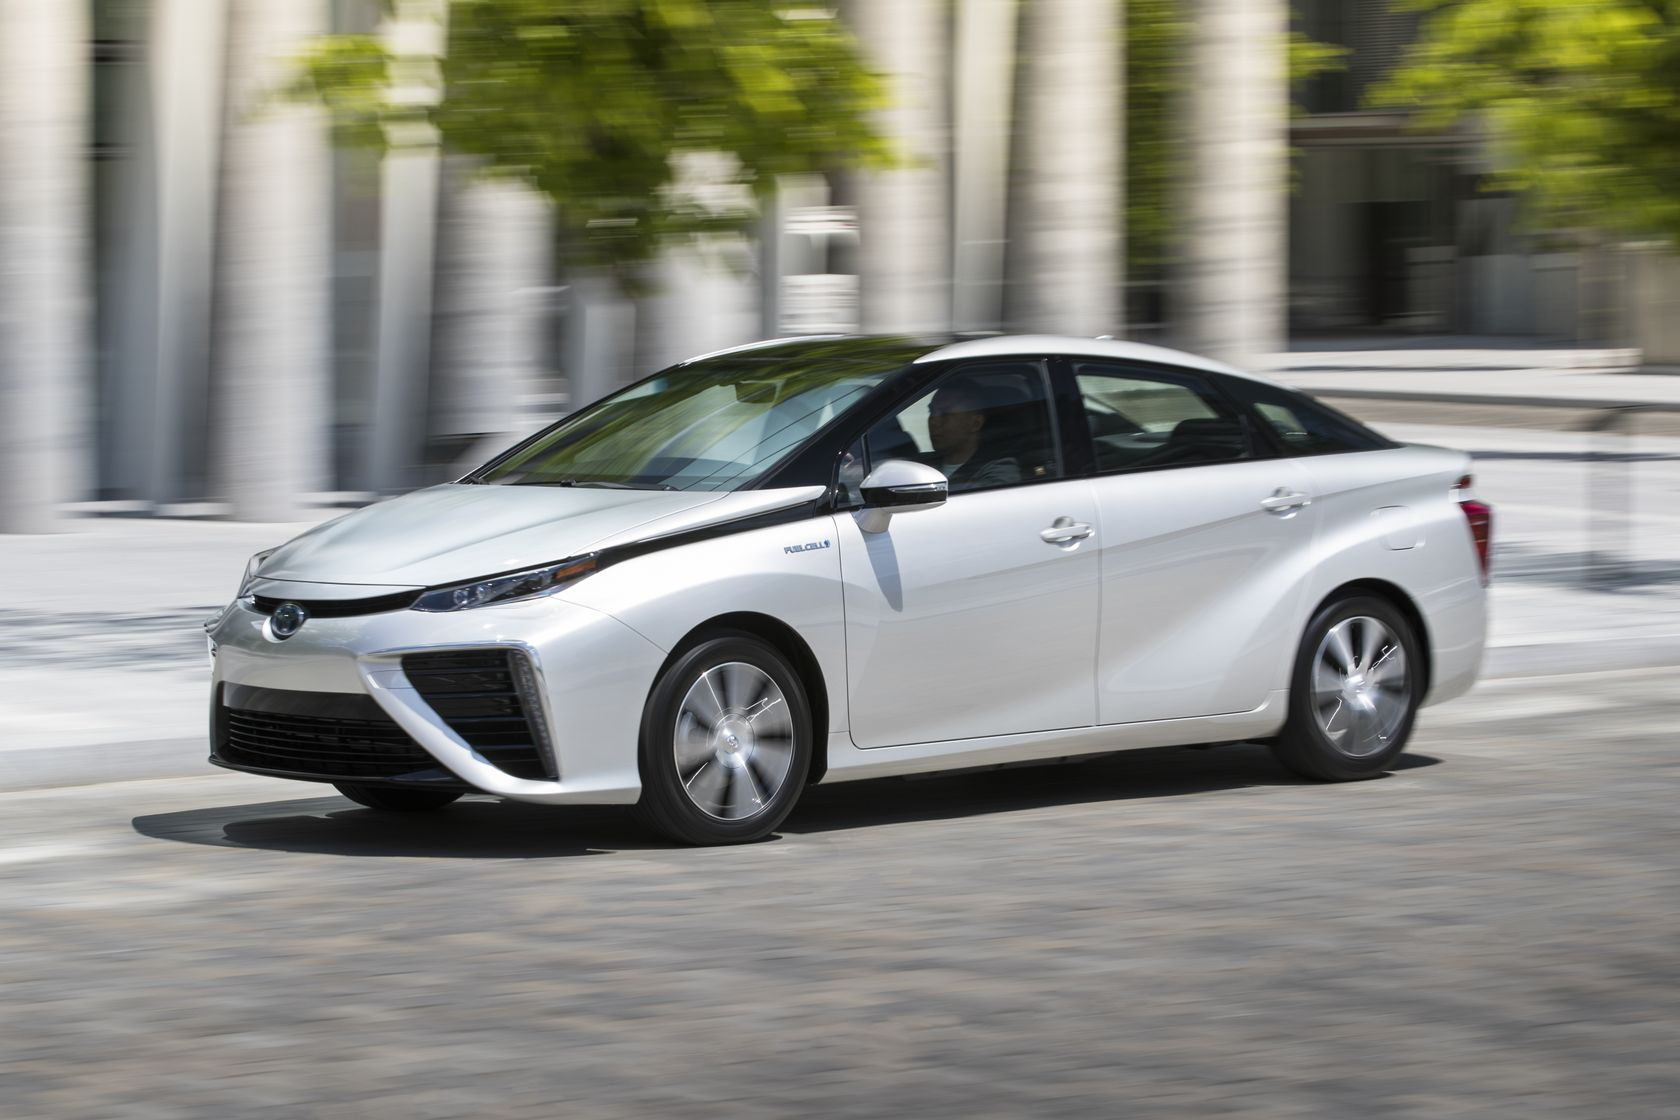 https://www.wheels.ca/news/toyota-mirai-ushers-future-sustainable-mobility/